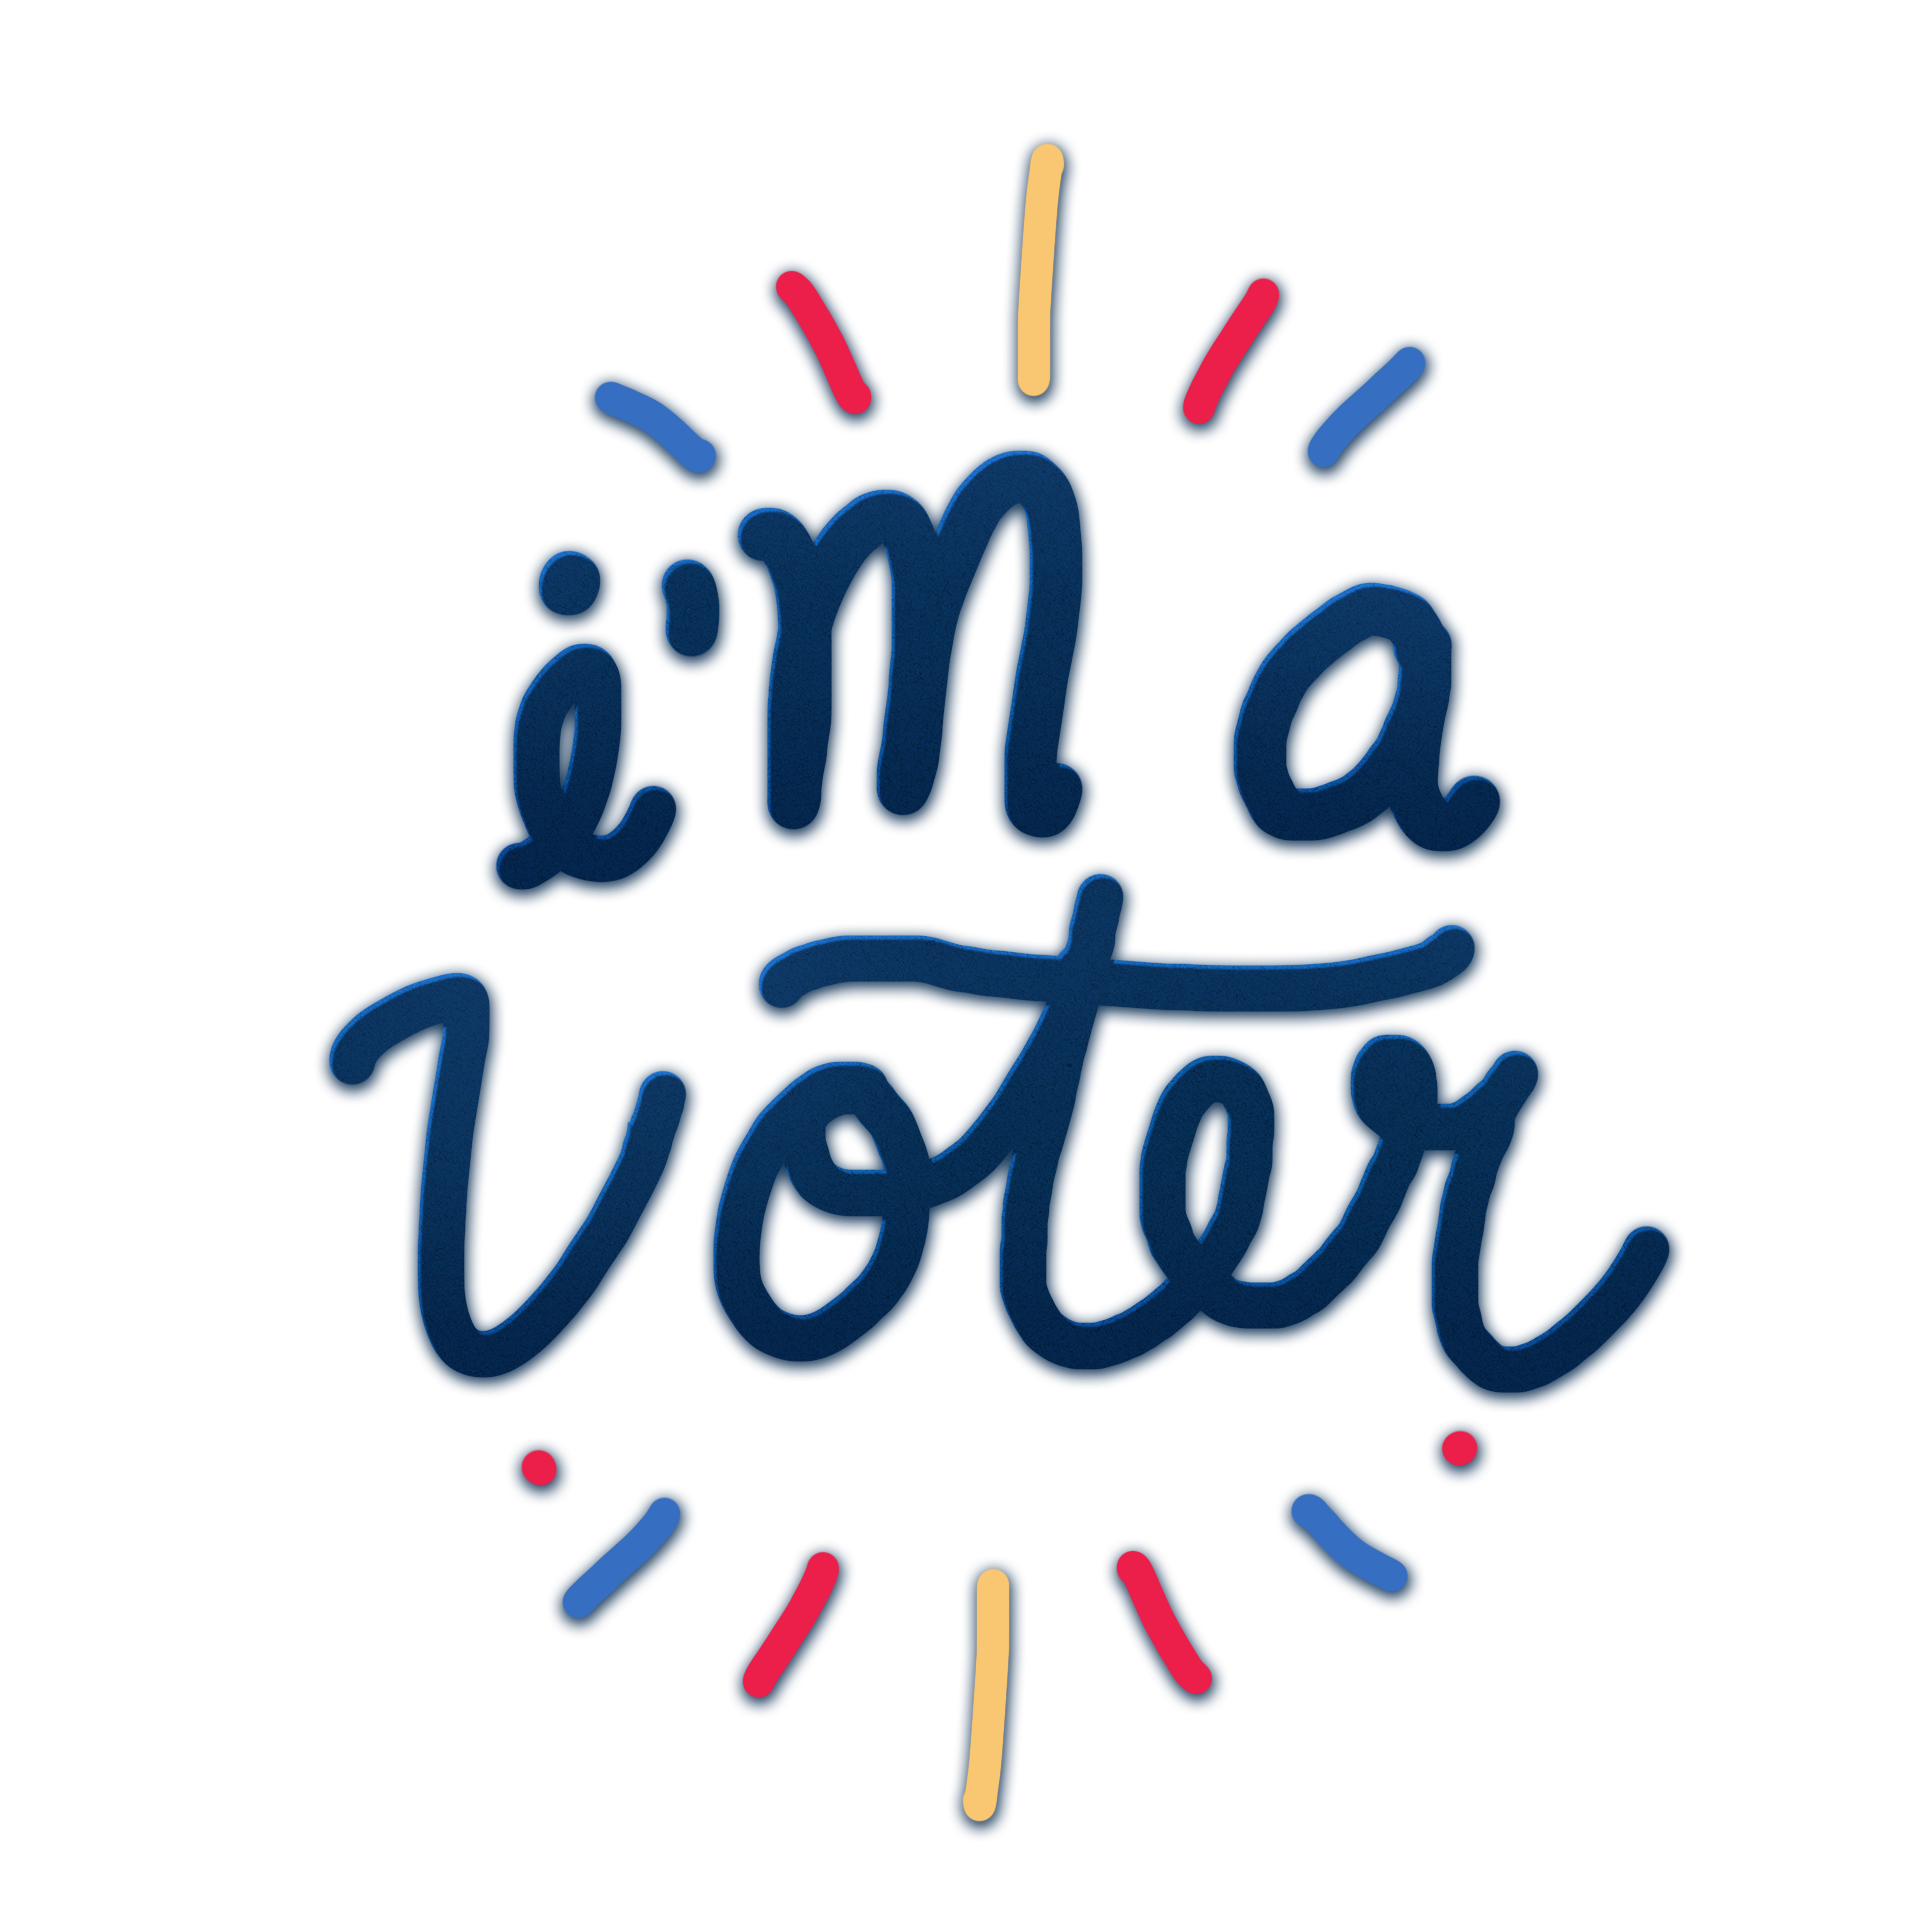 Stickers_24_v003.png